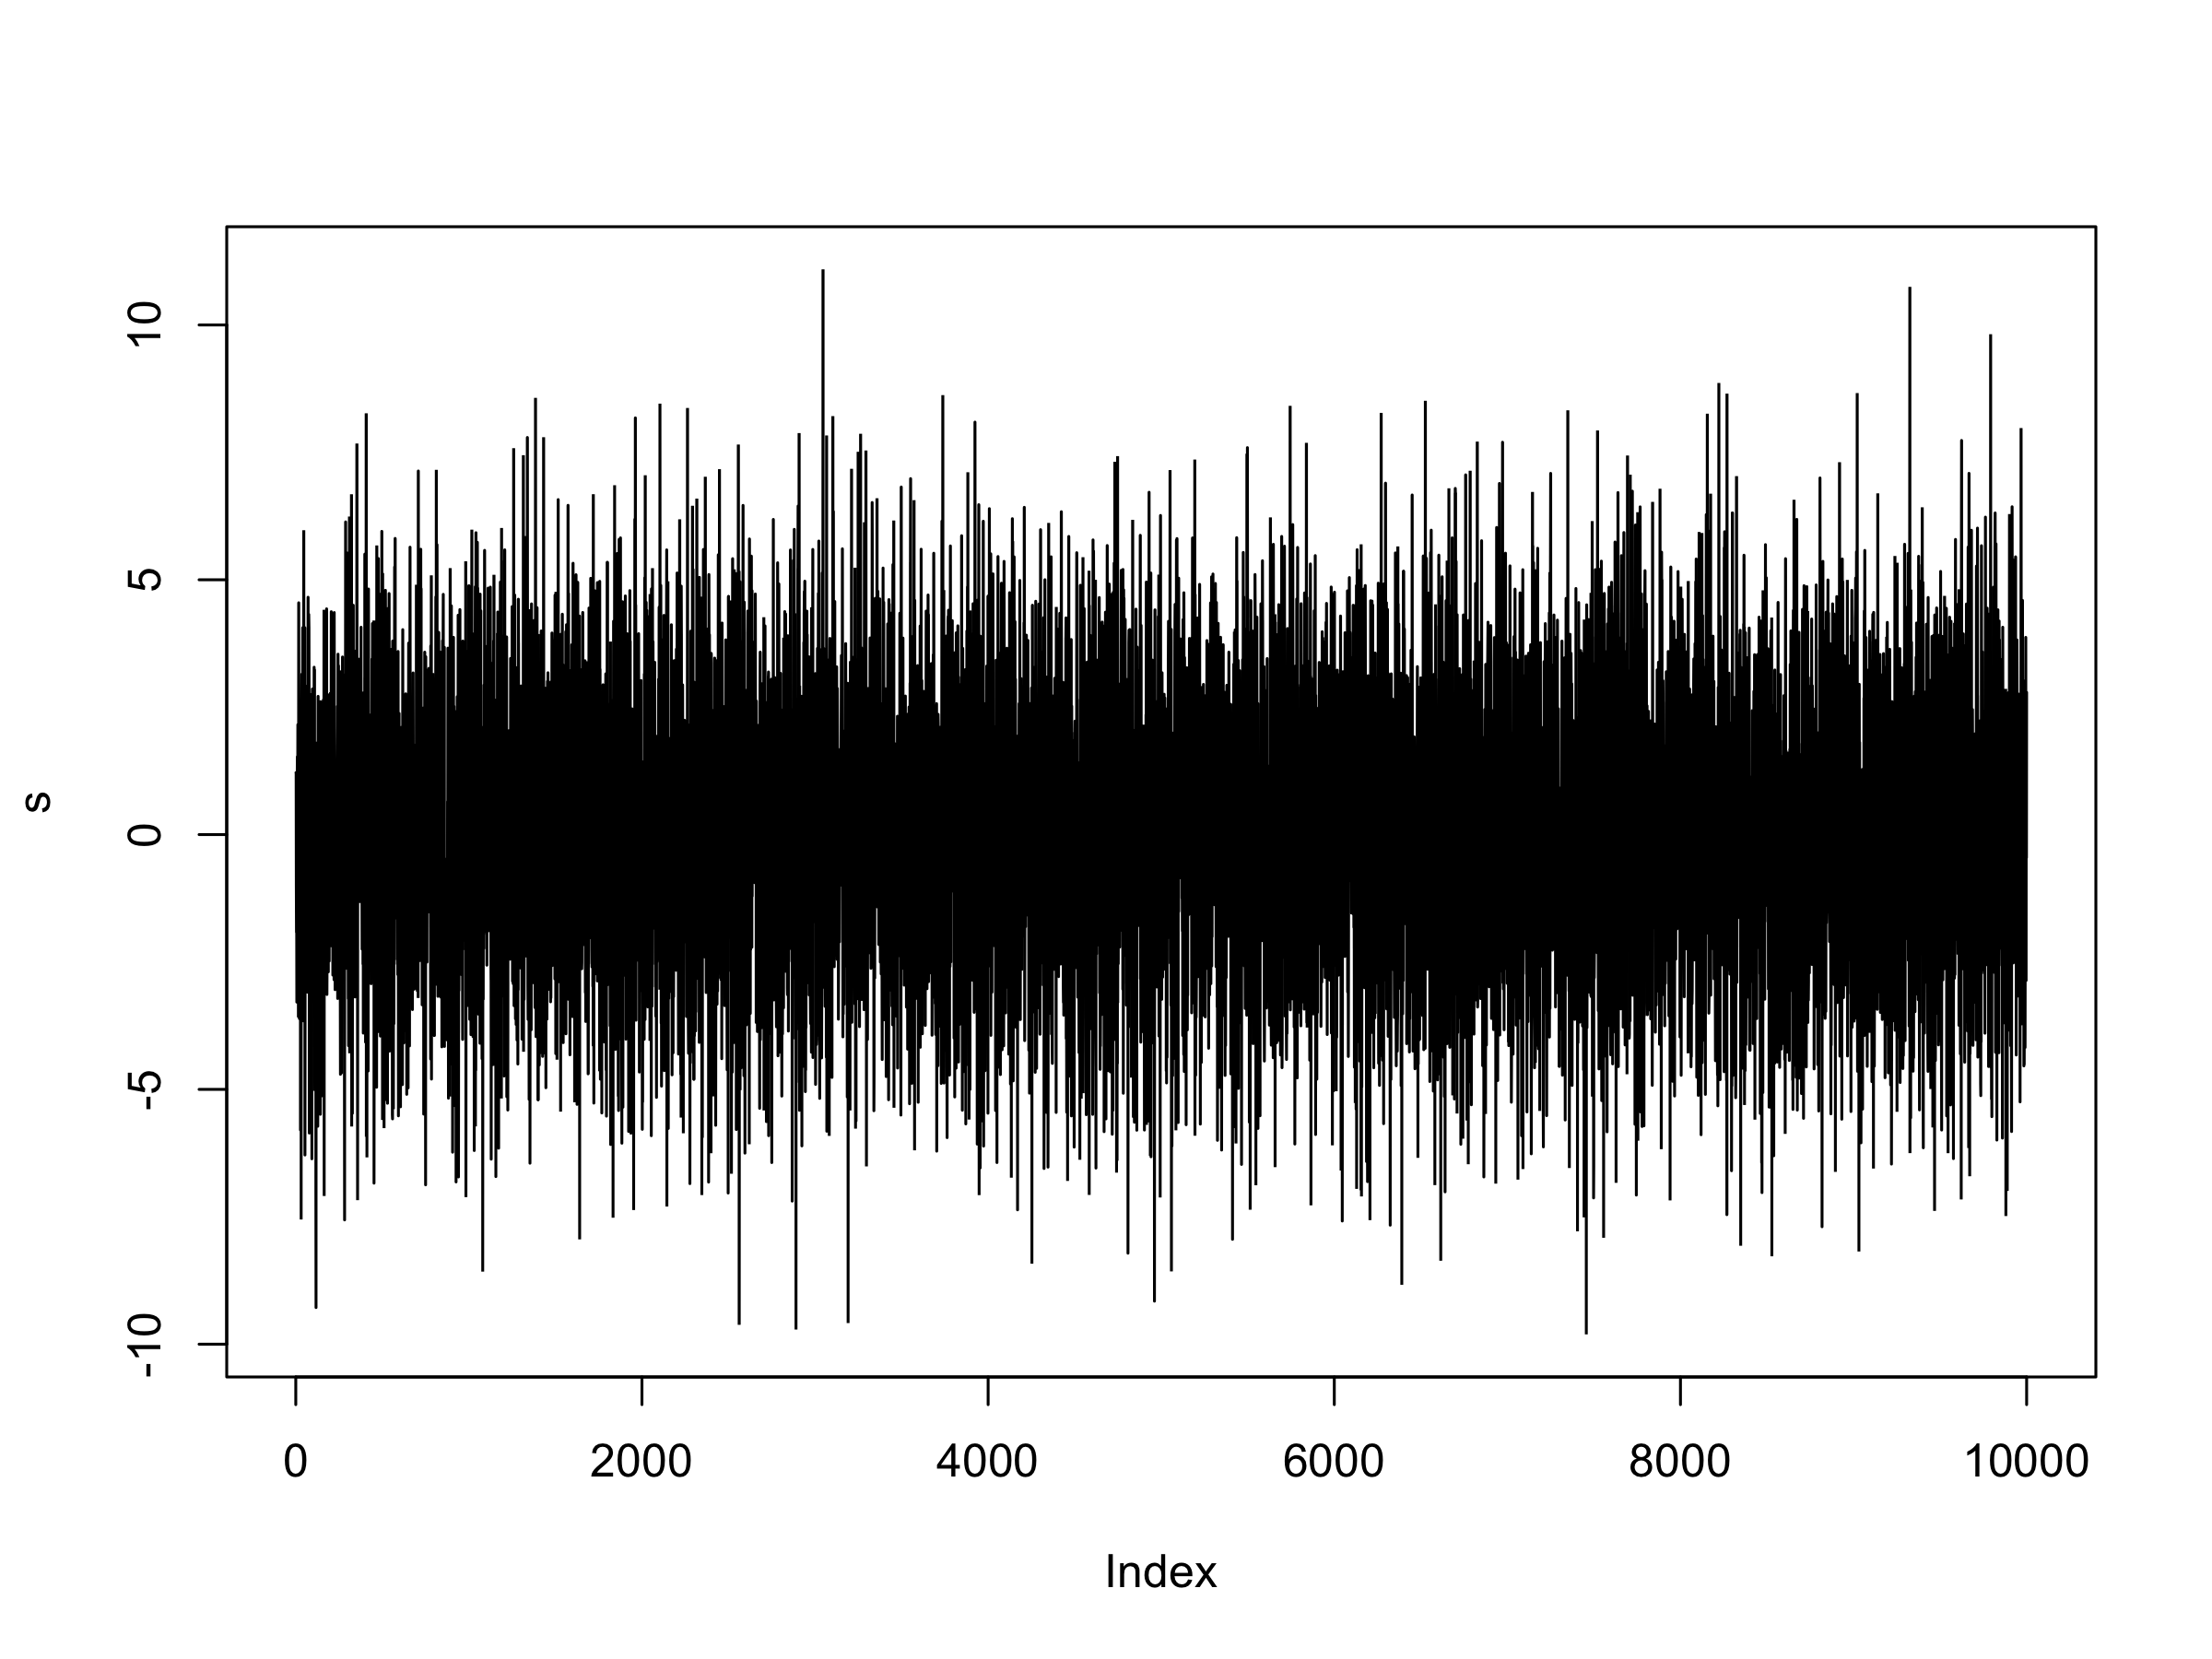 Johansen Test for Cointegrating Time Series Analysis in R